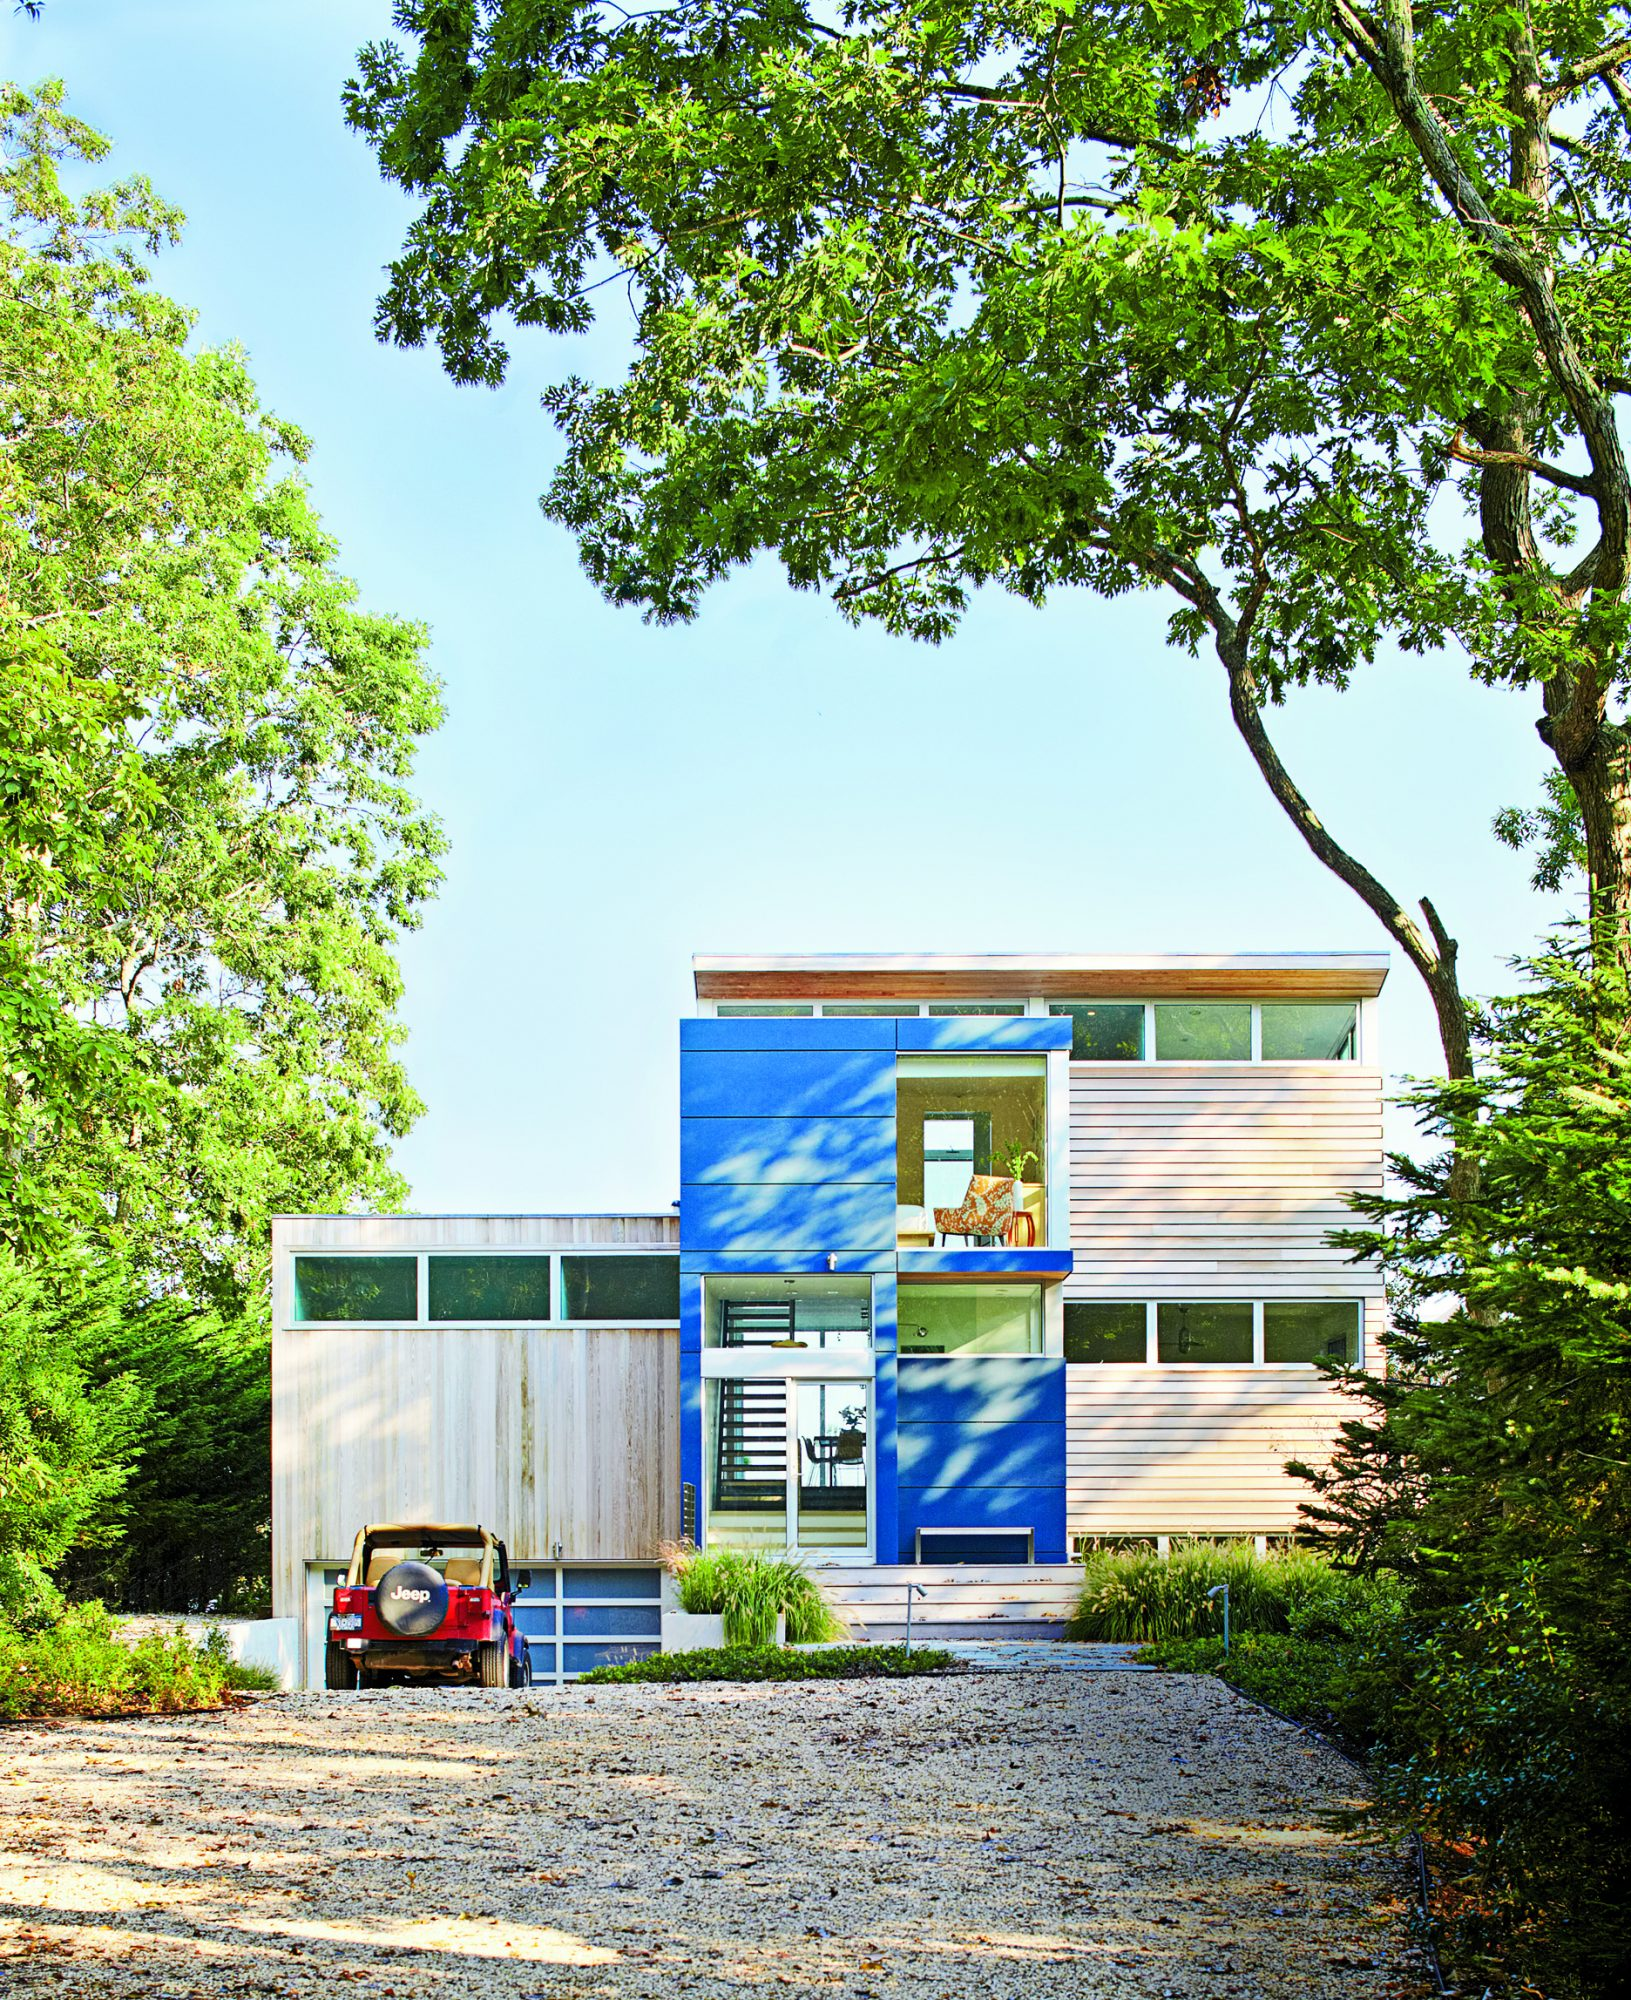 A complete overhaul transformed the cottage into a much more contemporary structure, with lengthy windows, more height, and a fun shade of blue that really pops against the natural wood siding.